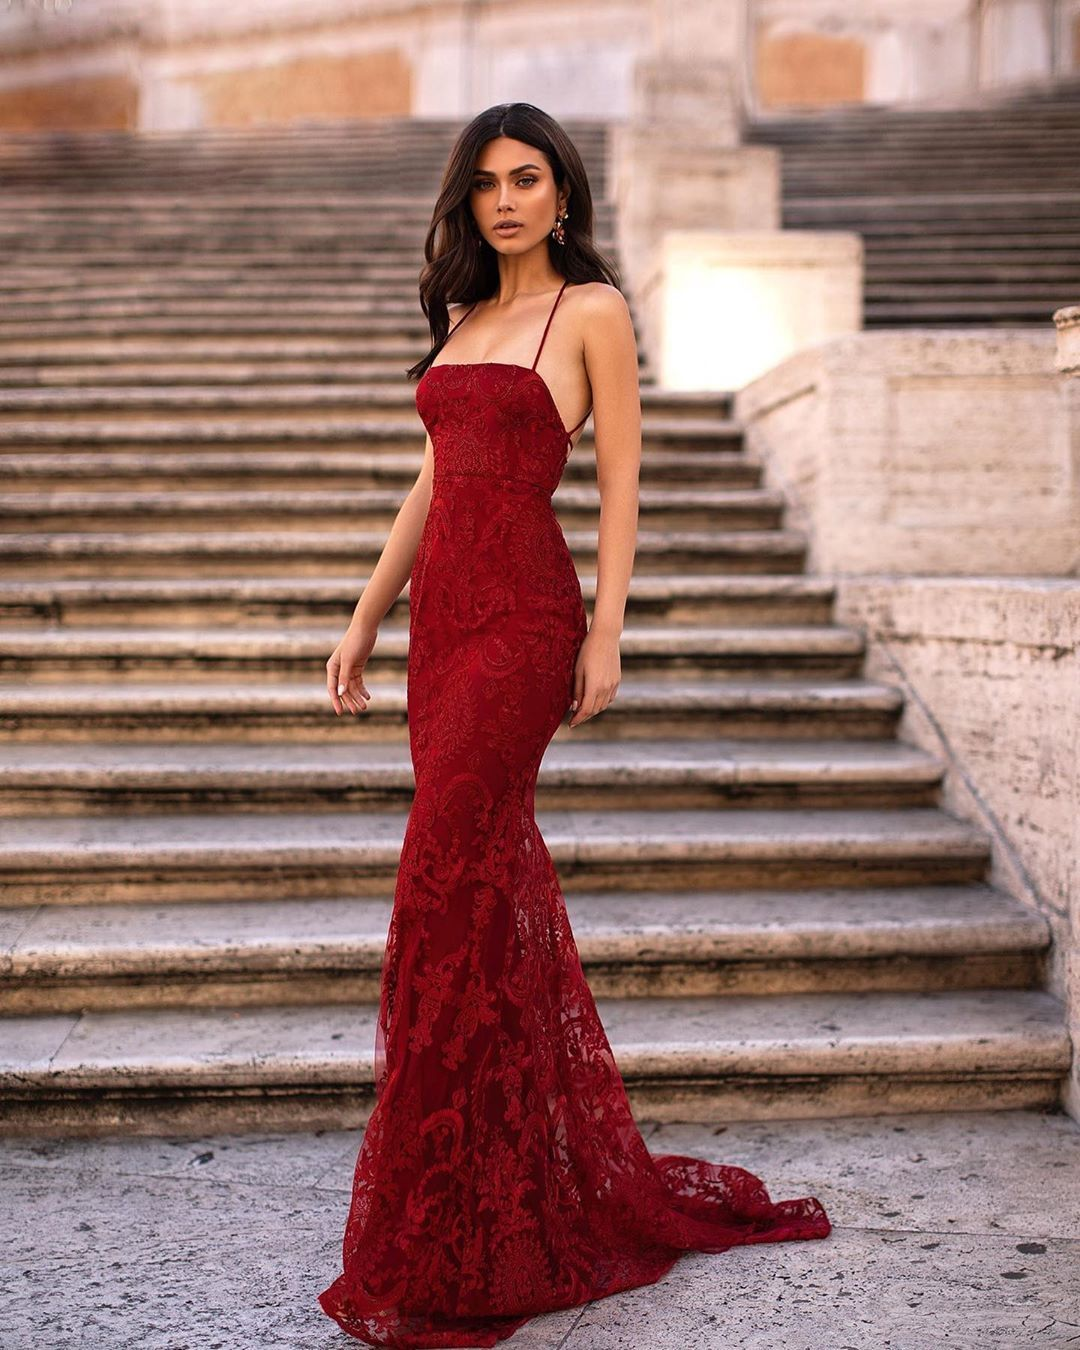 Alamour On Instagram This Week Shipment Is Almost Sold Out From The New Rome Collection Secure Your Dream G In 2020 Red Wedding Dresses Ball Dresses Red Ball Gowns